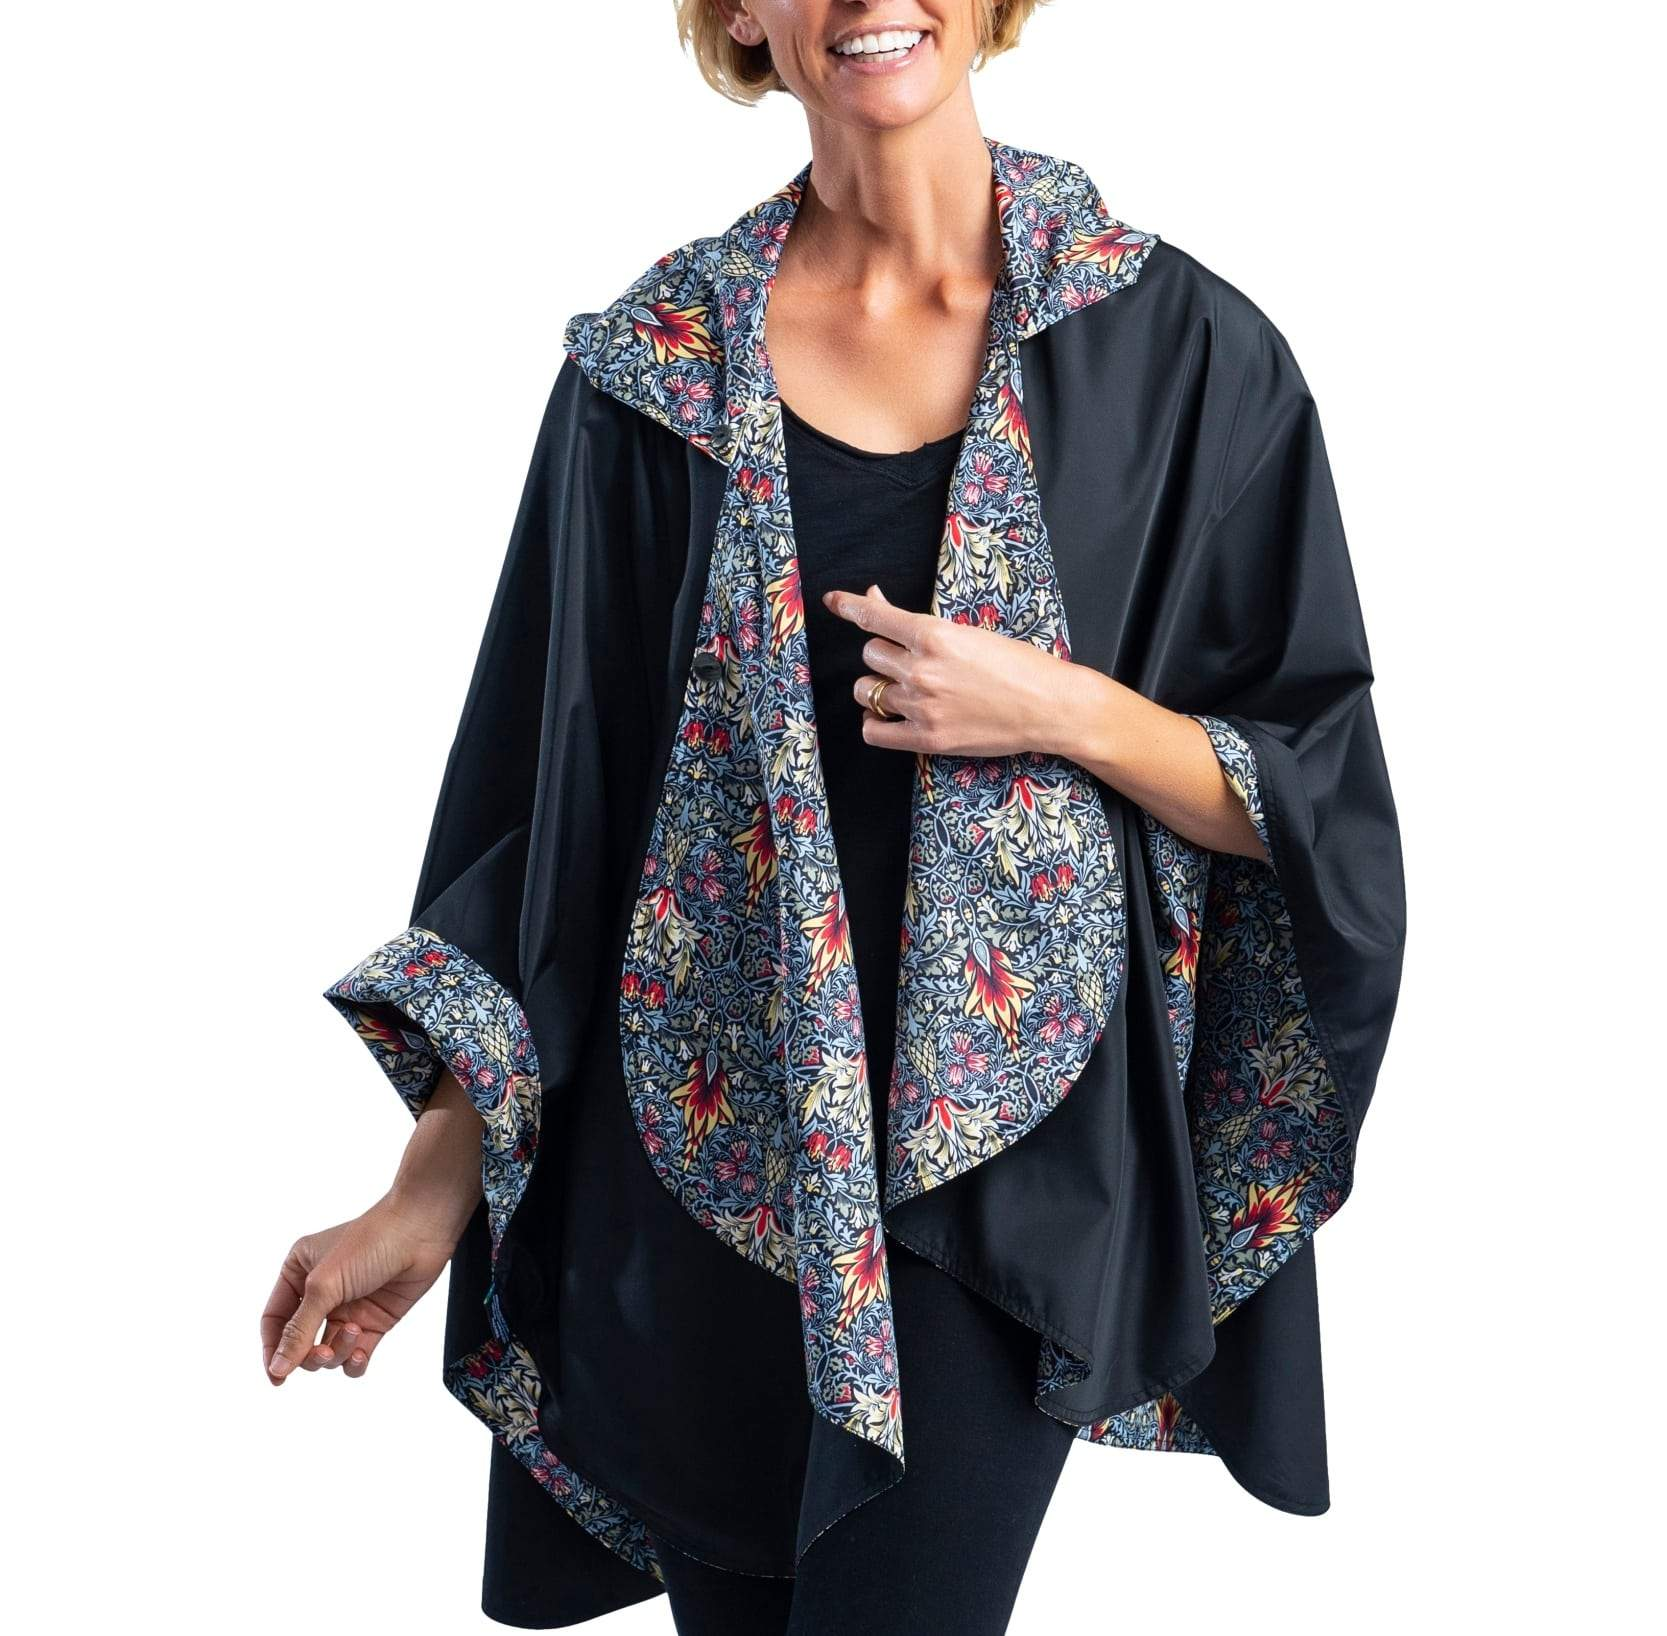 RainCaper Black/William Morris Snakeshead Travel Cape - Last One!